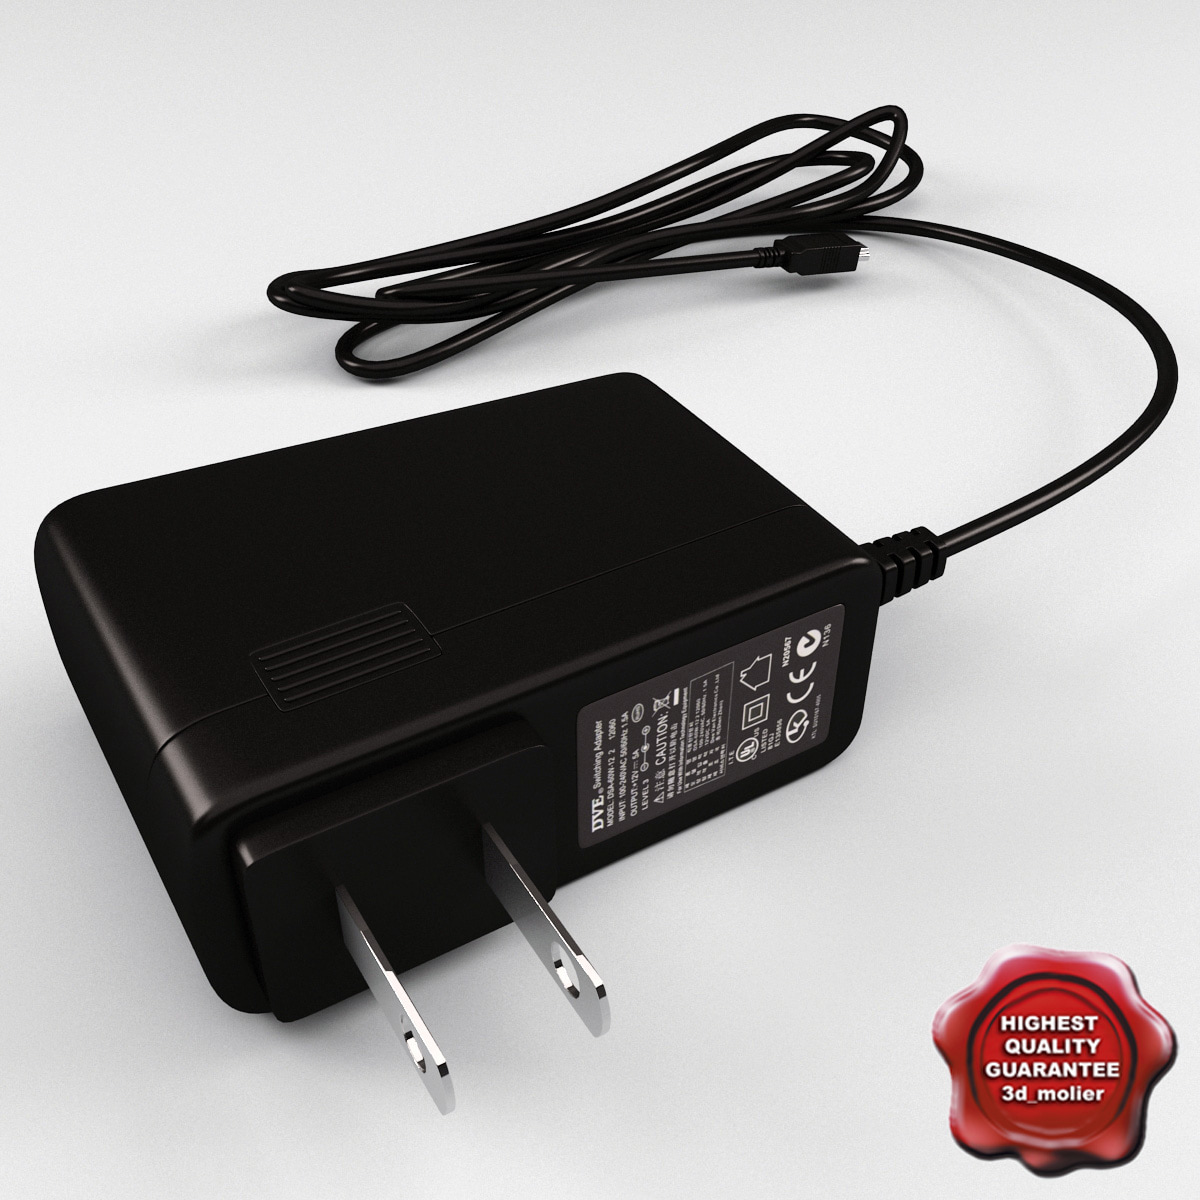 Mobile_Phone_Travel_Charger_00.jpg